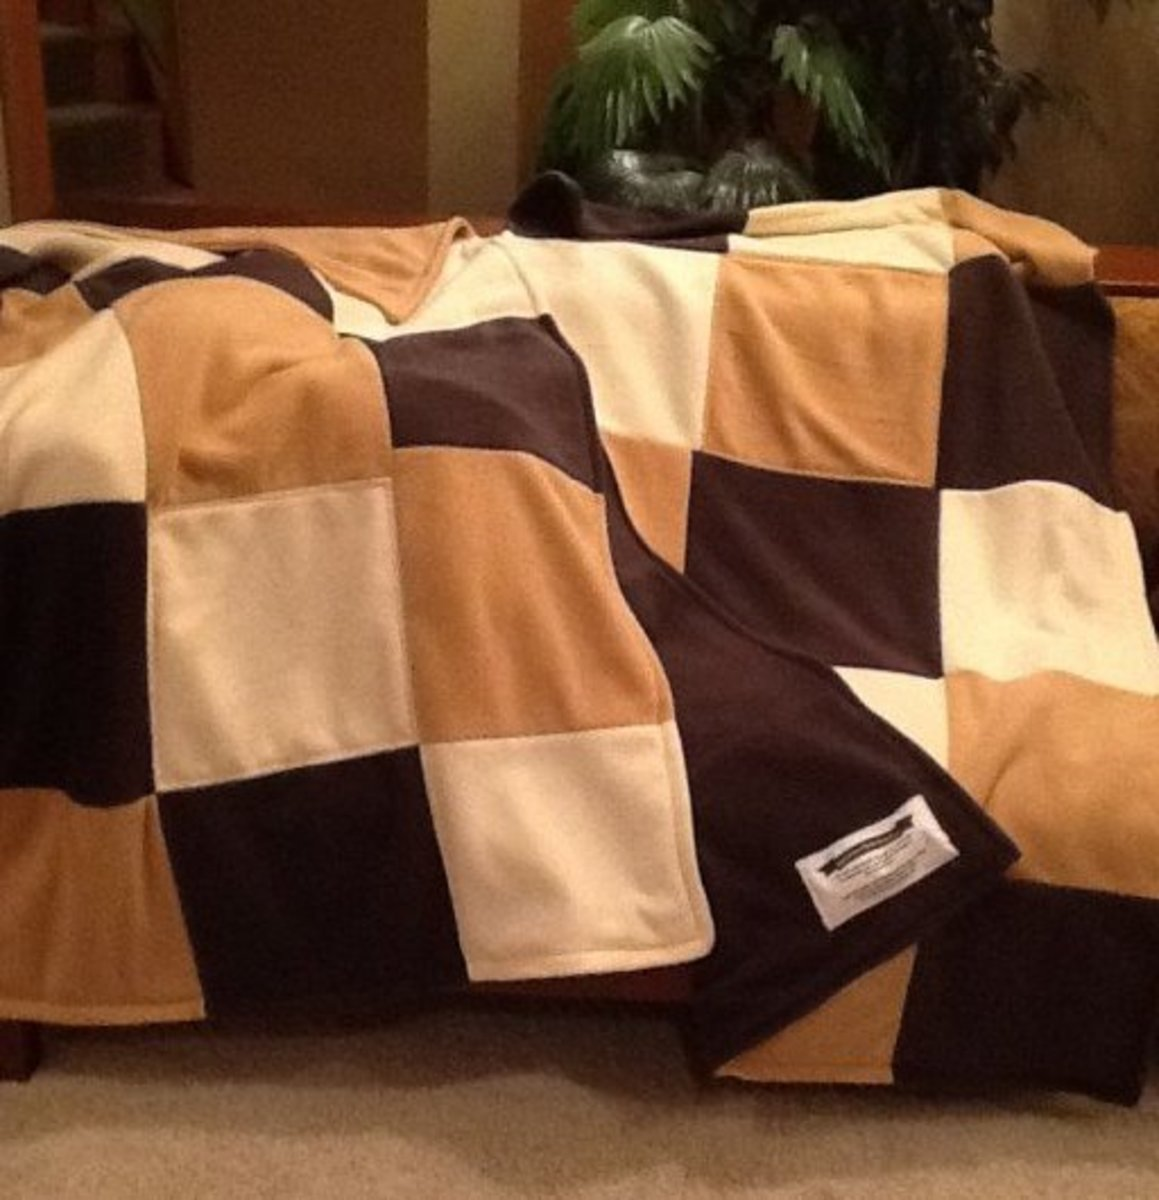 Make a Small Quilt from Fleece Using Well-Loved Sweatshirts or Newly Purchased Fabric